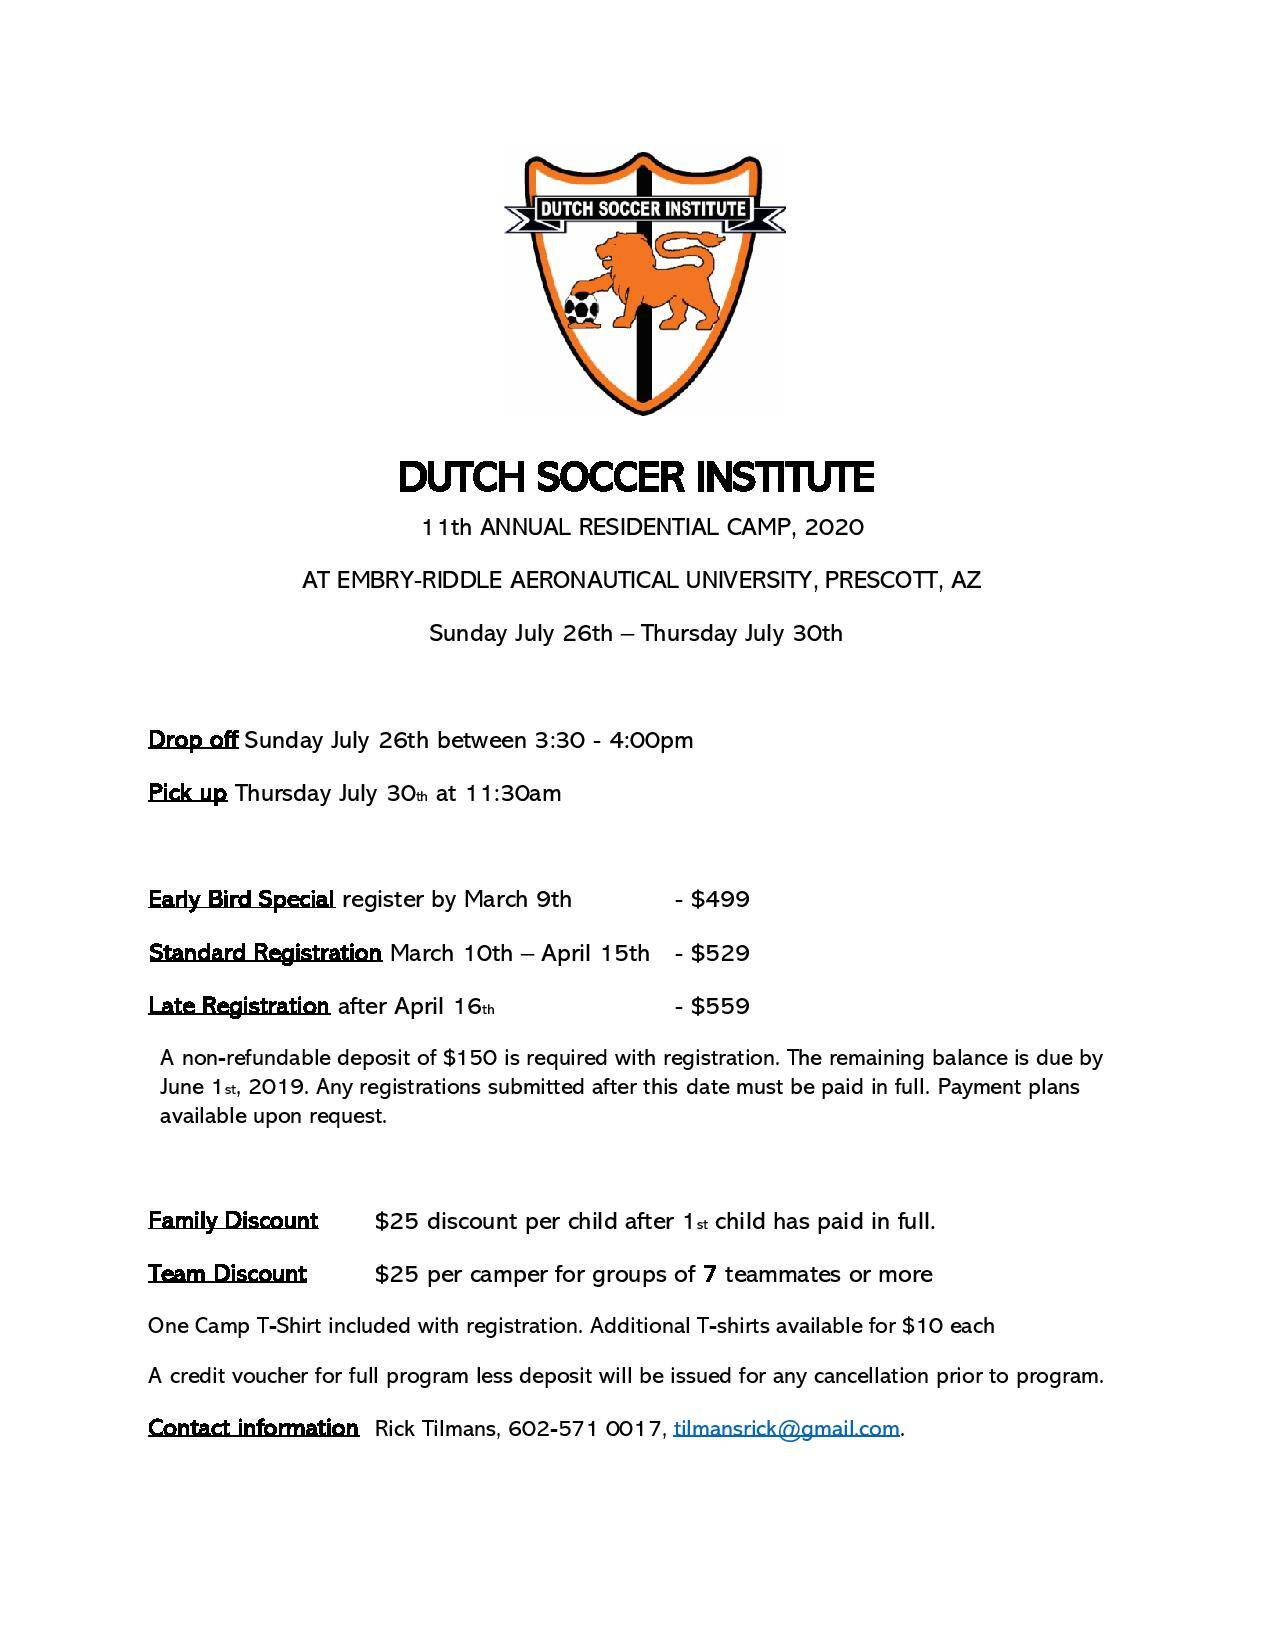 Youth Soccer Summer Camp Arizona